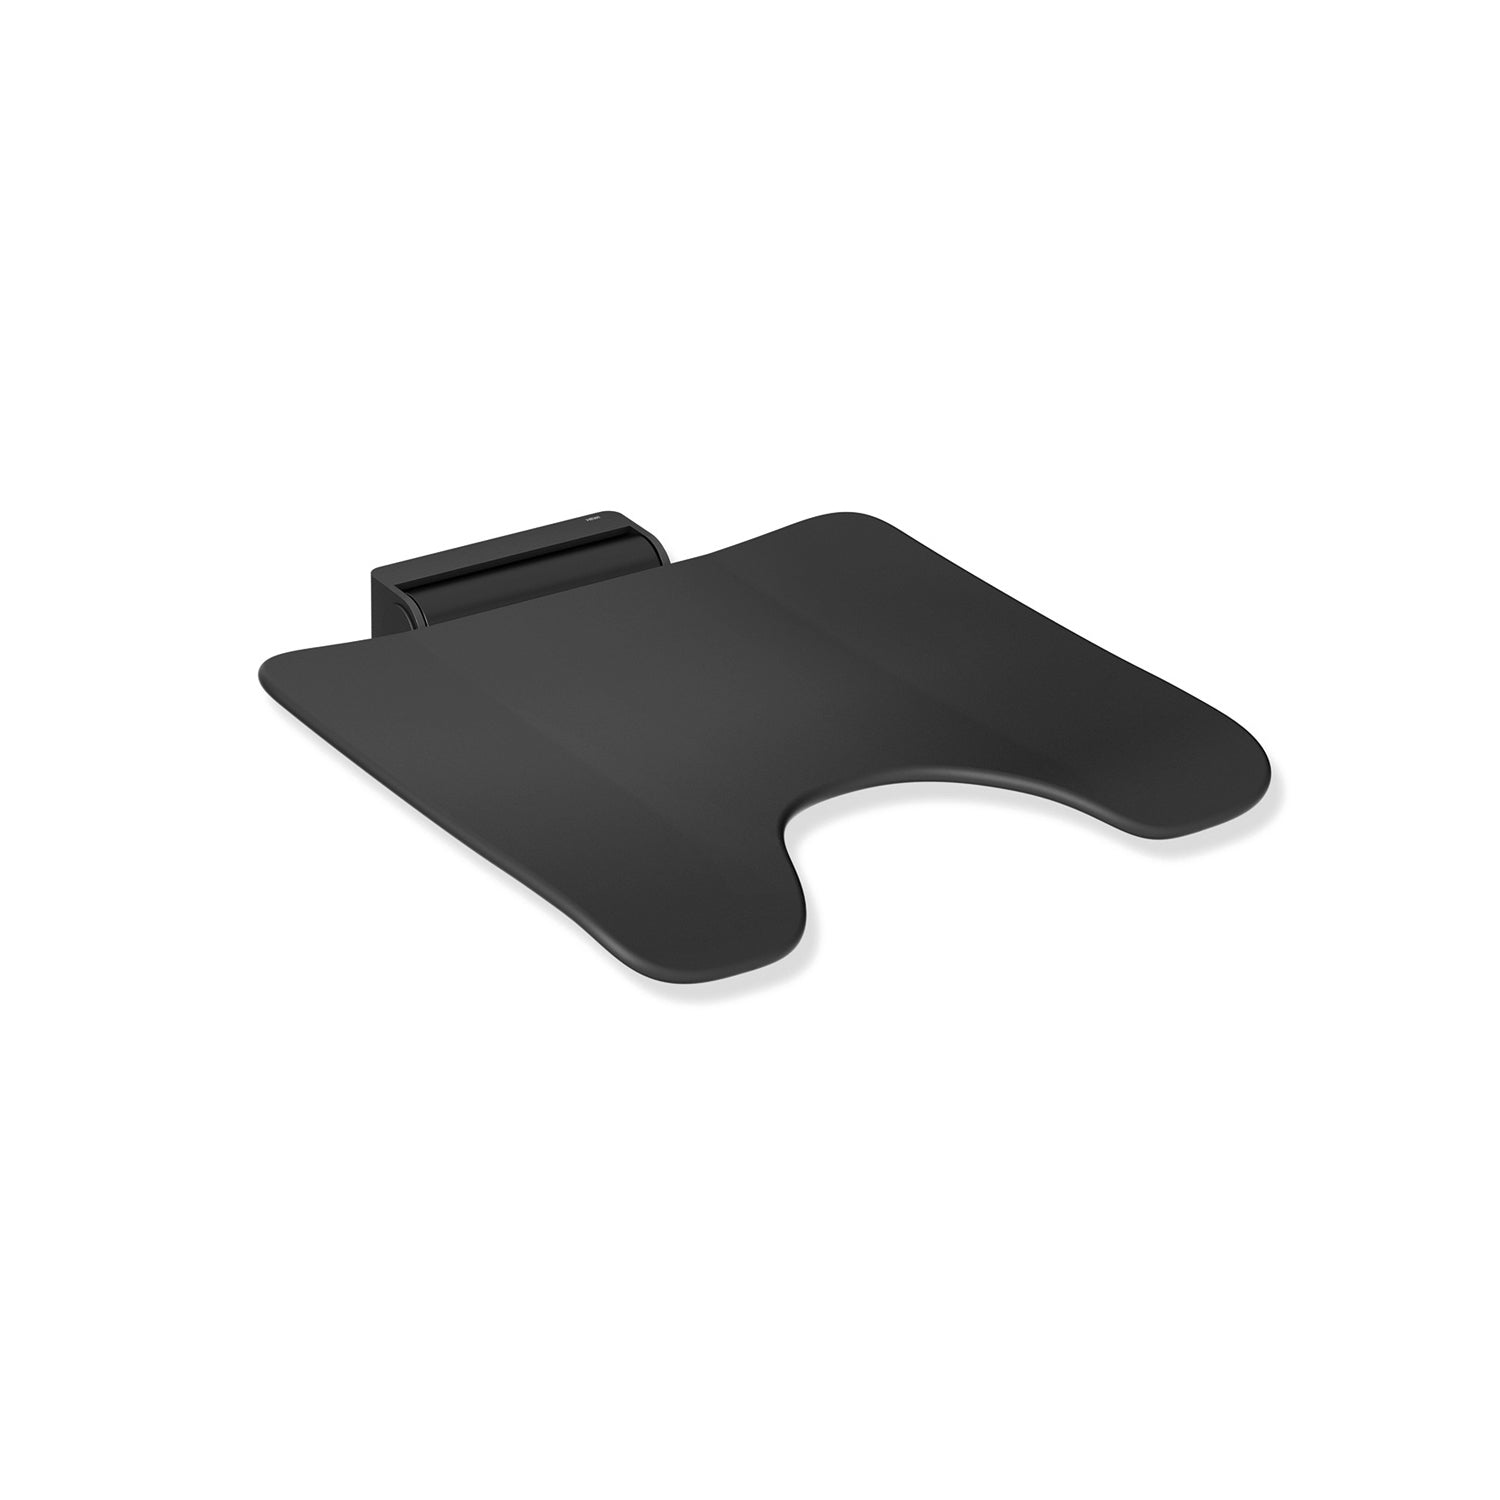 Freestyle Fixed Shower Seat with a cut-out in a matt black seat and matt black finish bracket on a white background